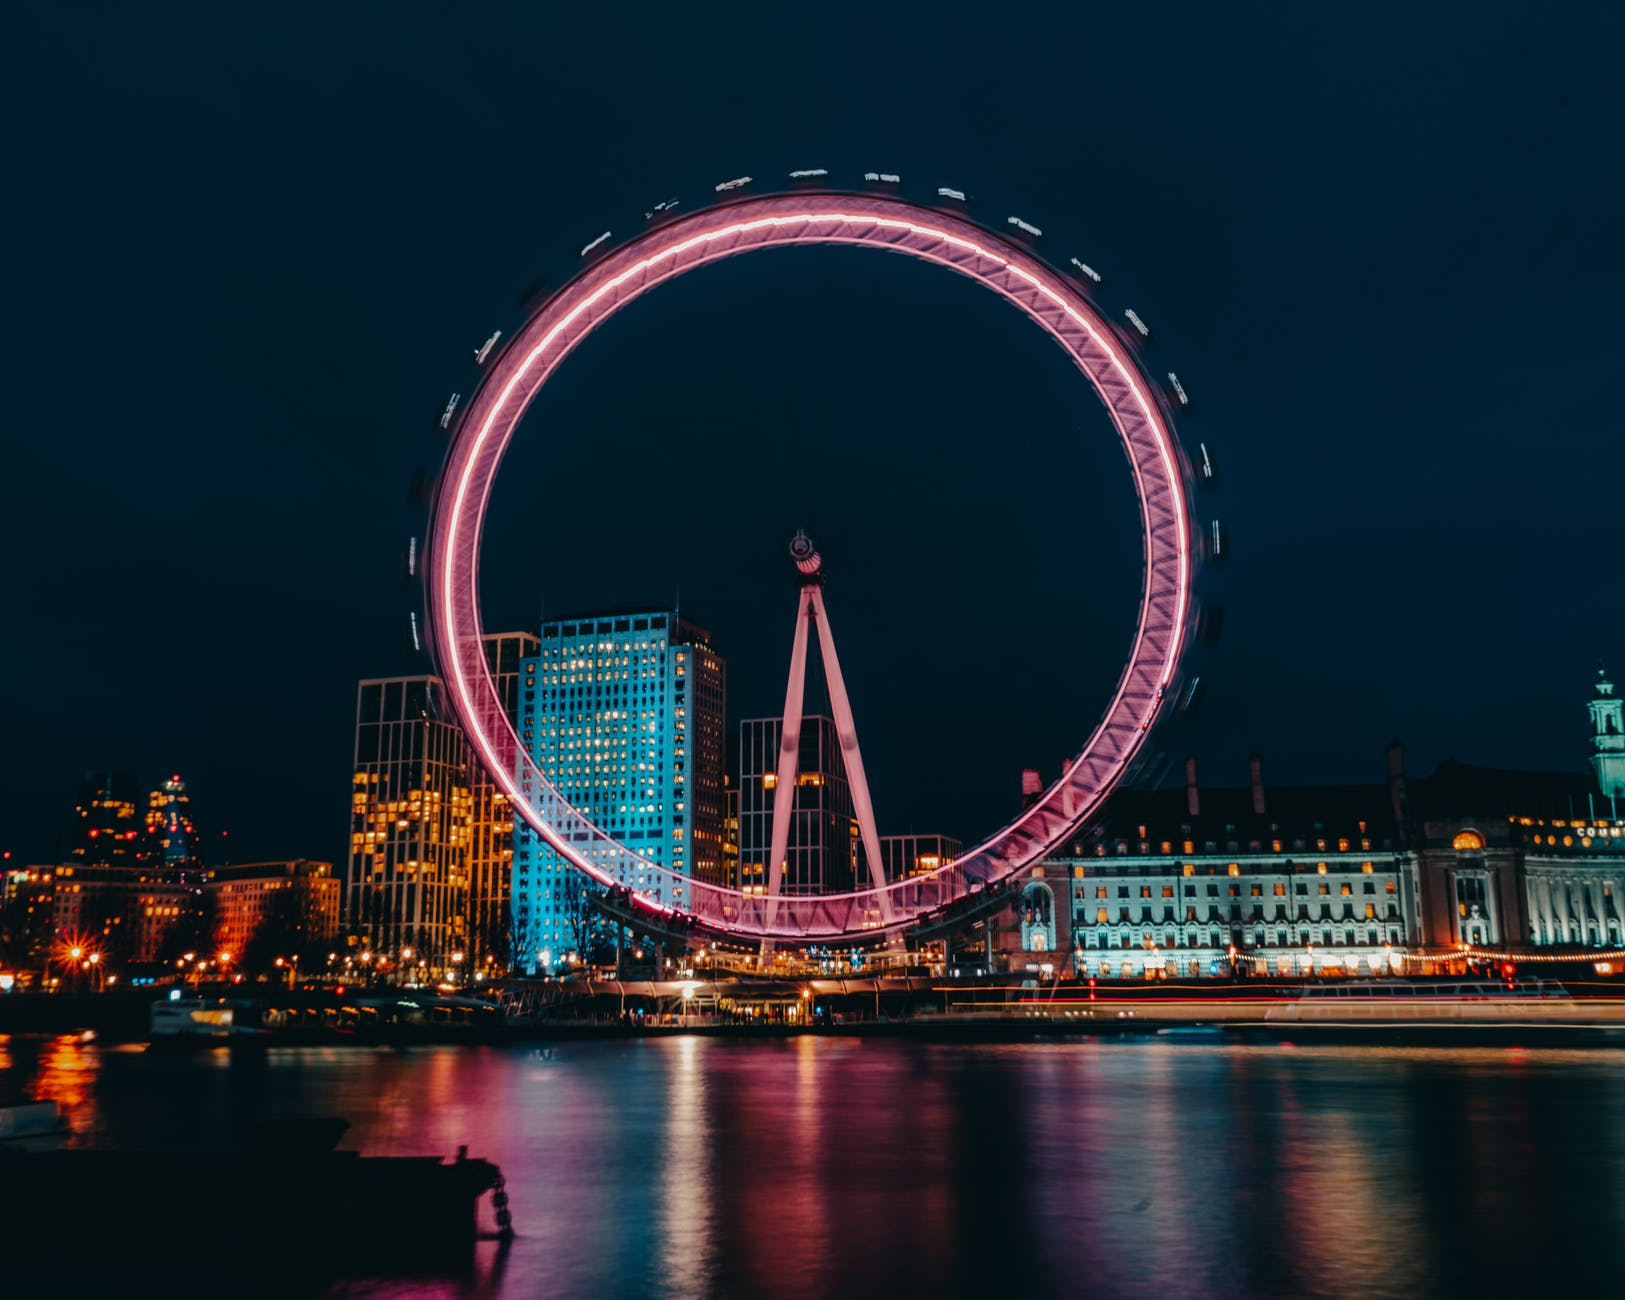 photo of luminous ferris wheel in modern city district on river bank at night